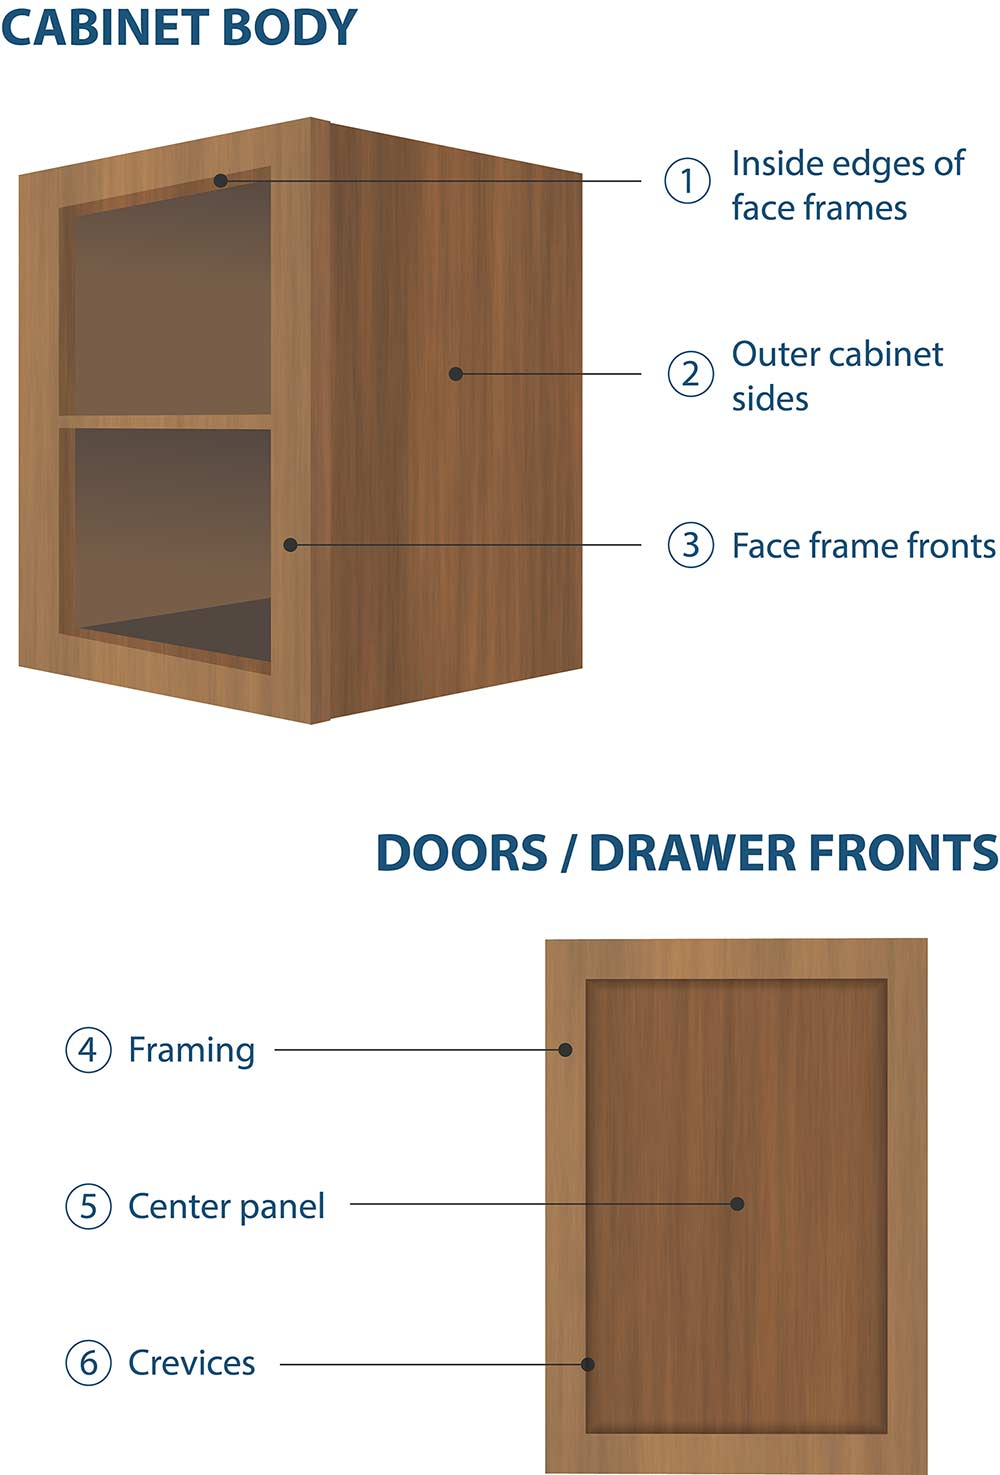 painting kitchen cabinets diagram